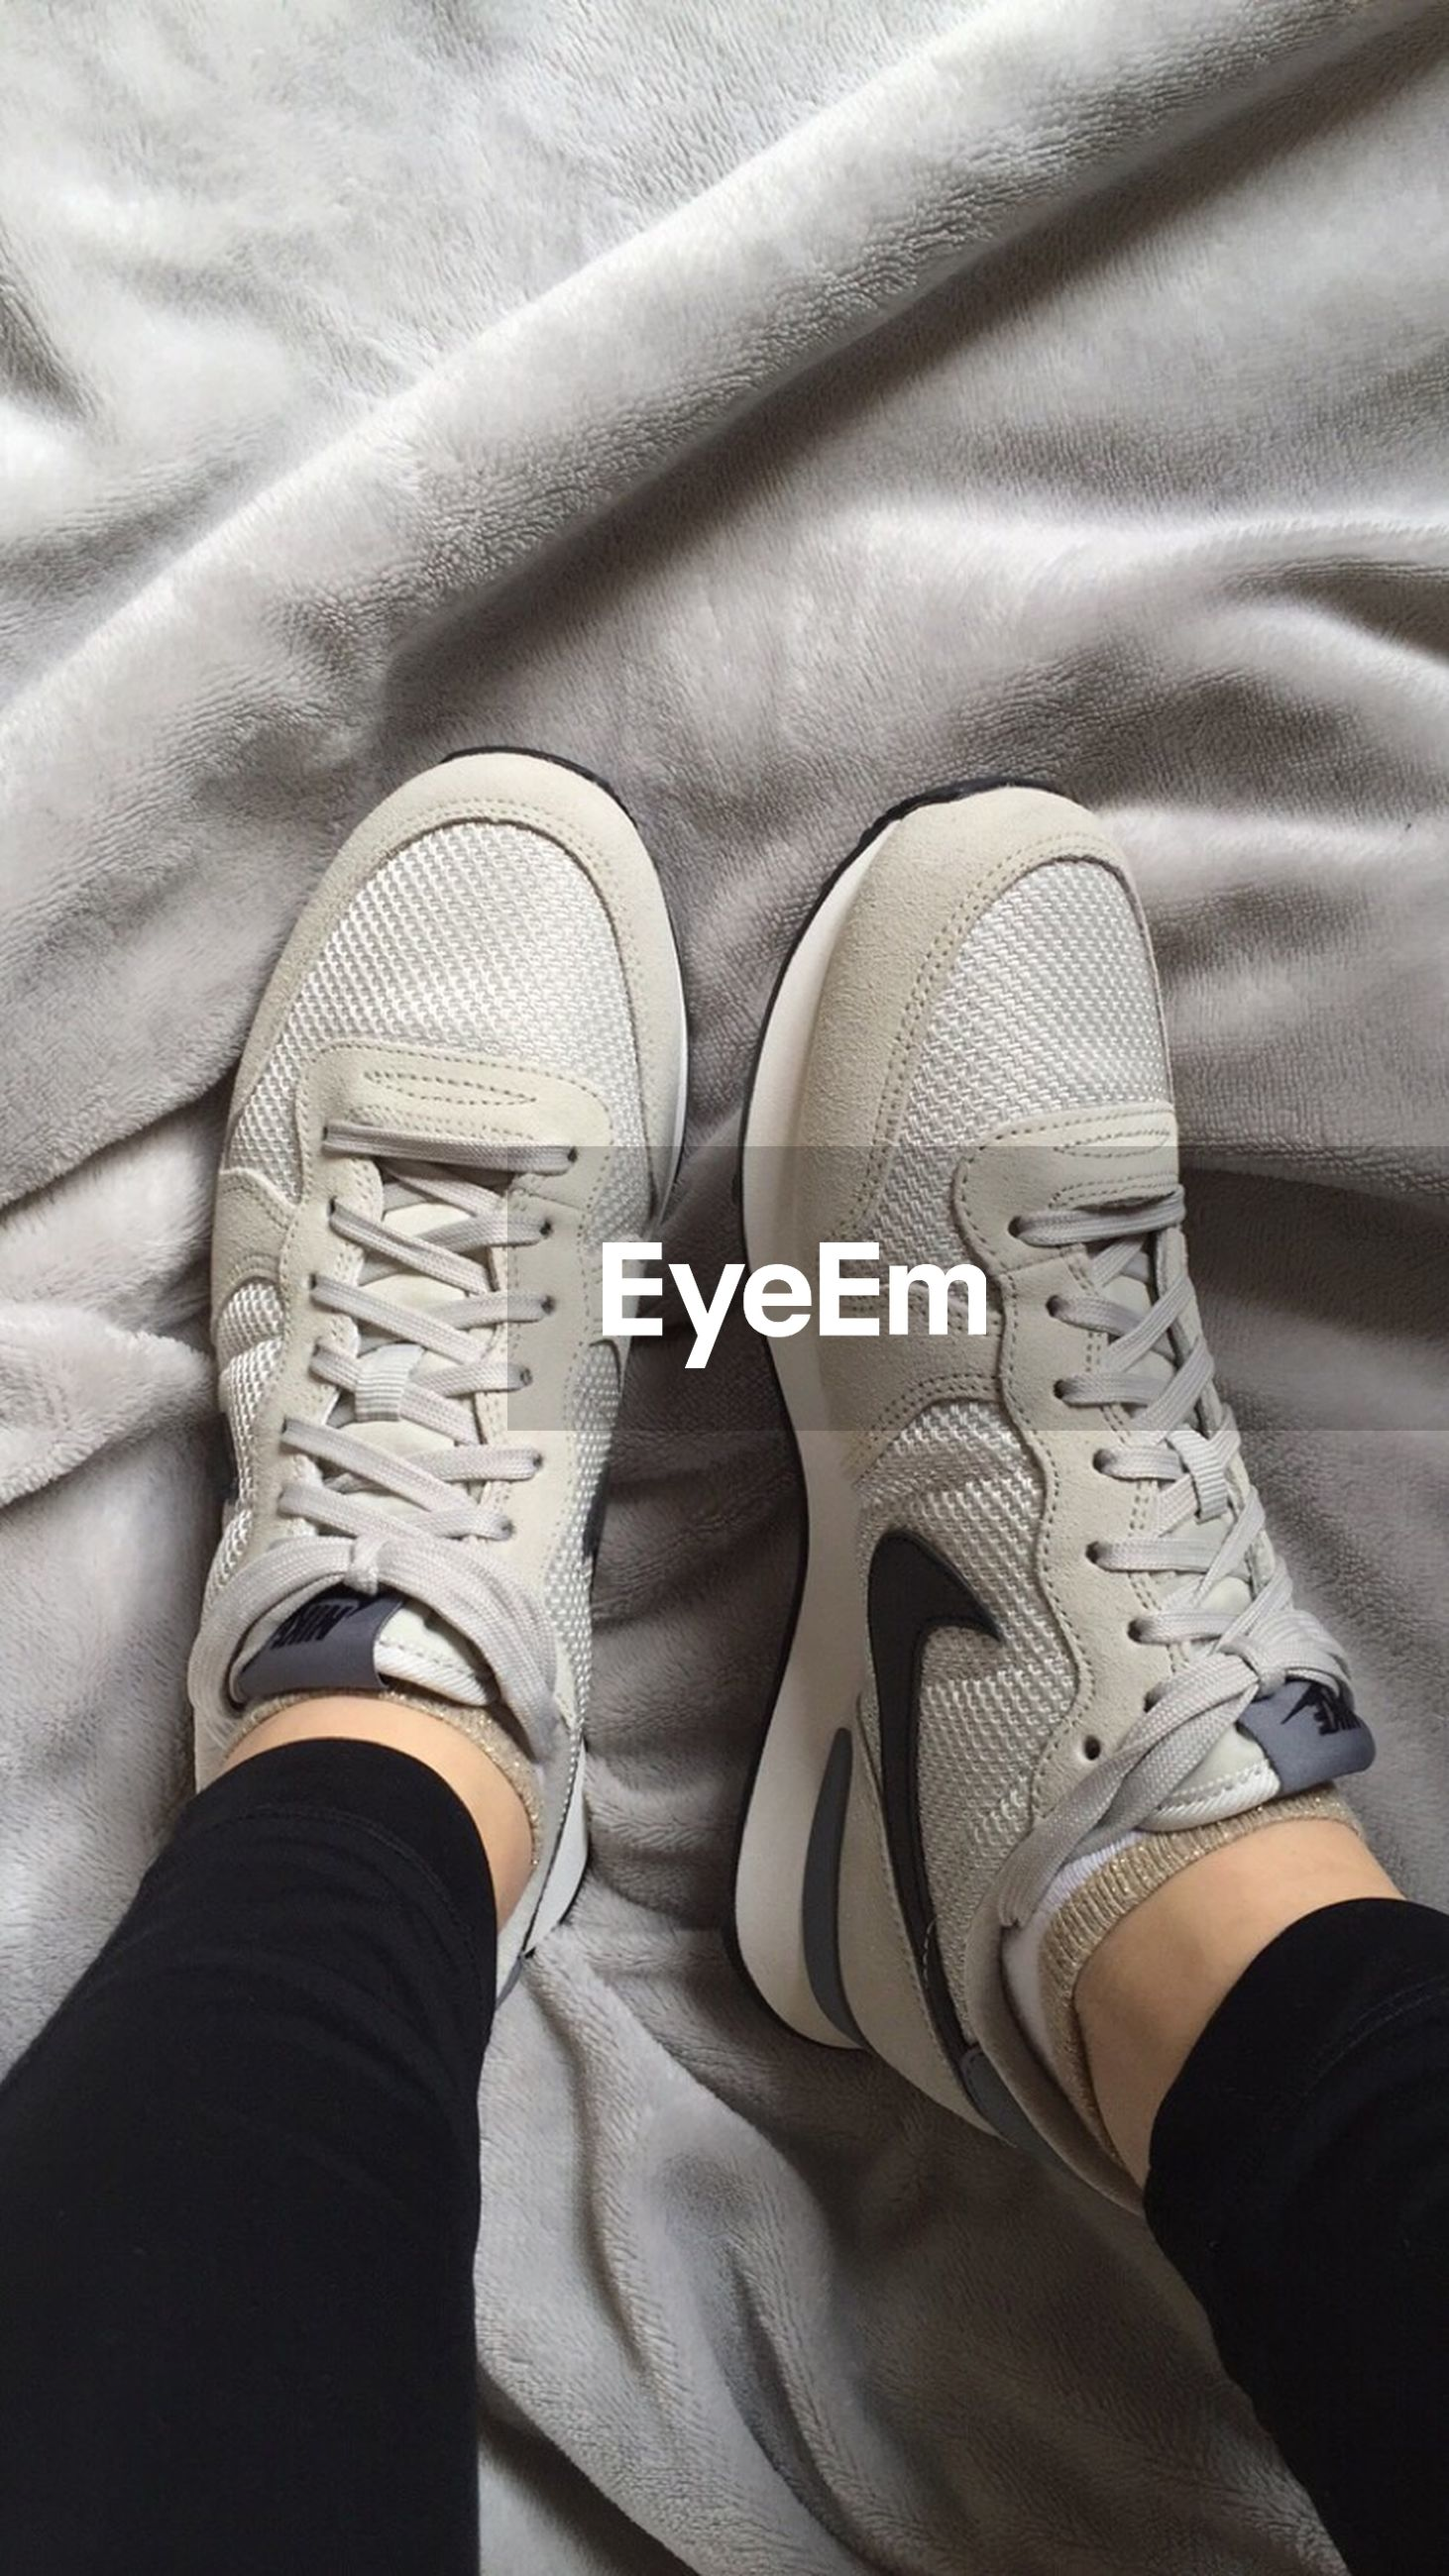 low section, person, shoe, personal perspective, jeans, lifestyles, footwear, men, human foot, standing, leisure activity, canvas shoe, unrecognizable person, part of, high angle view, casual clothing, close-up